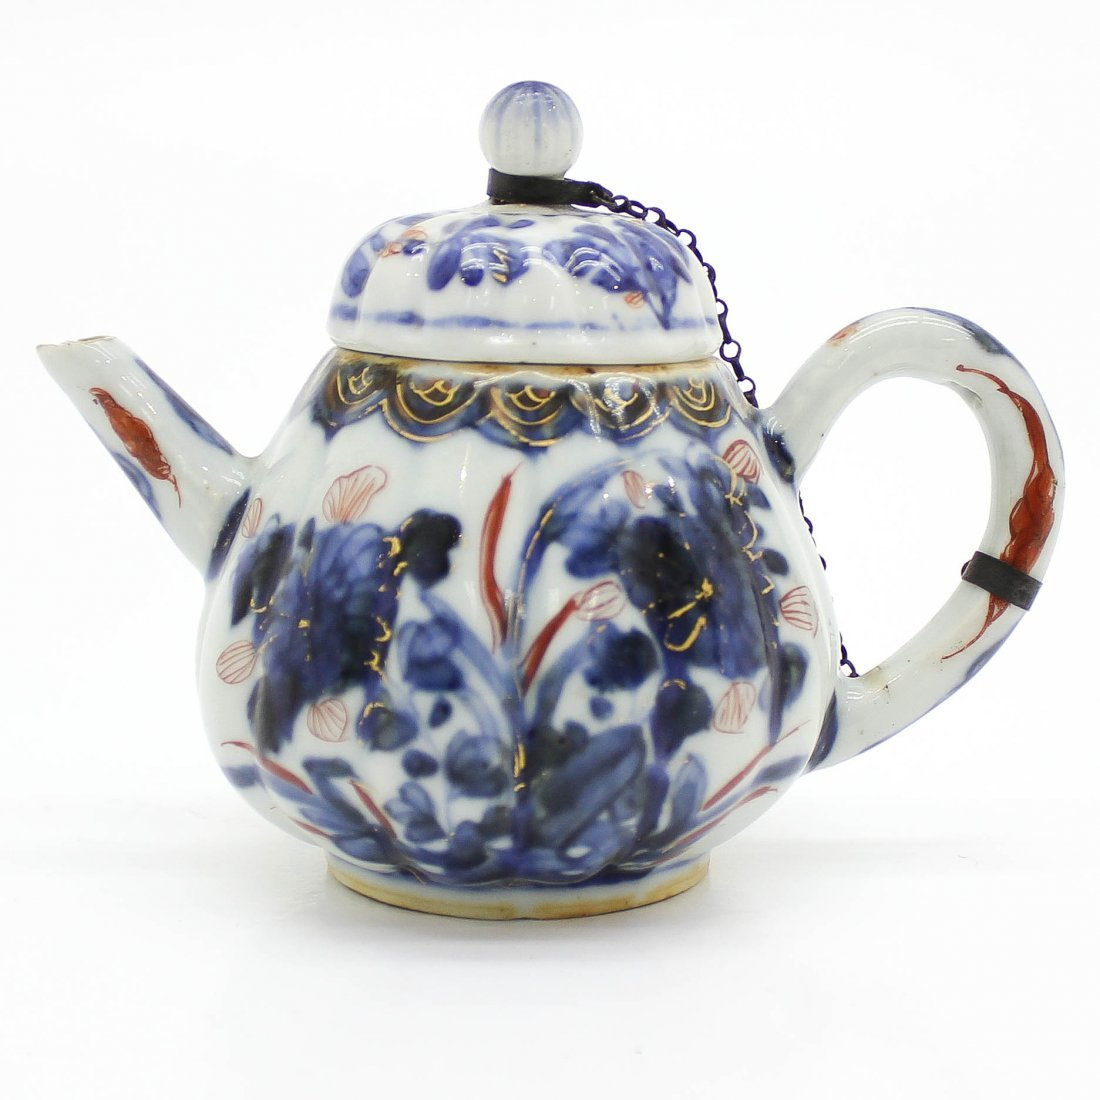 18th Century Japanese Imari Miniature Teapot & Cover